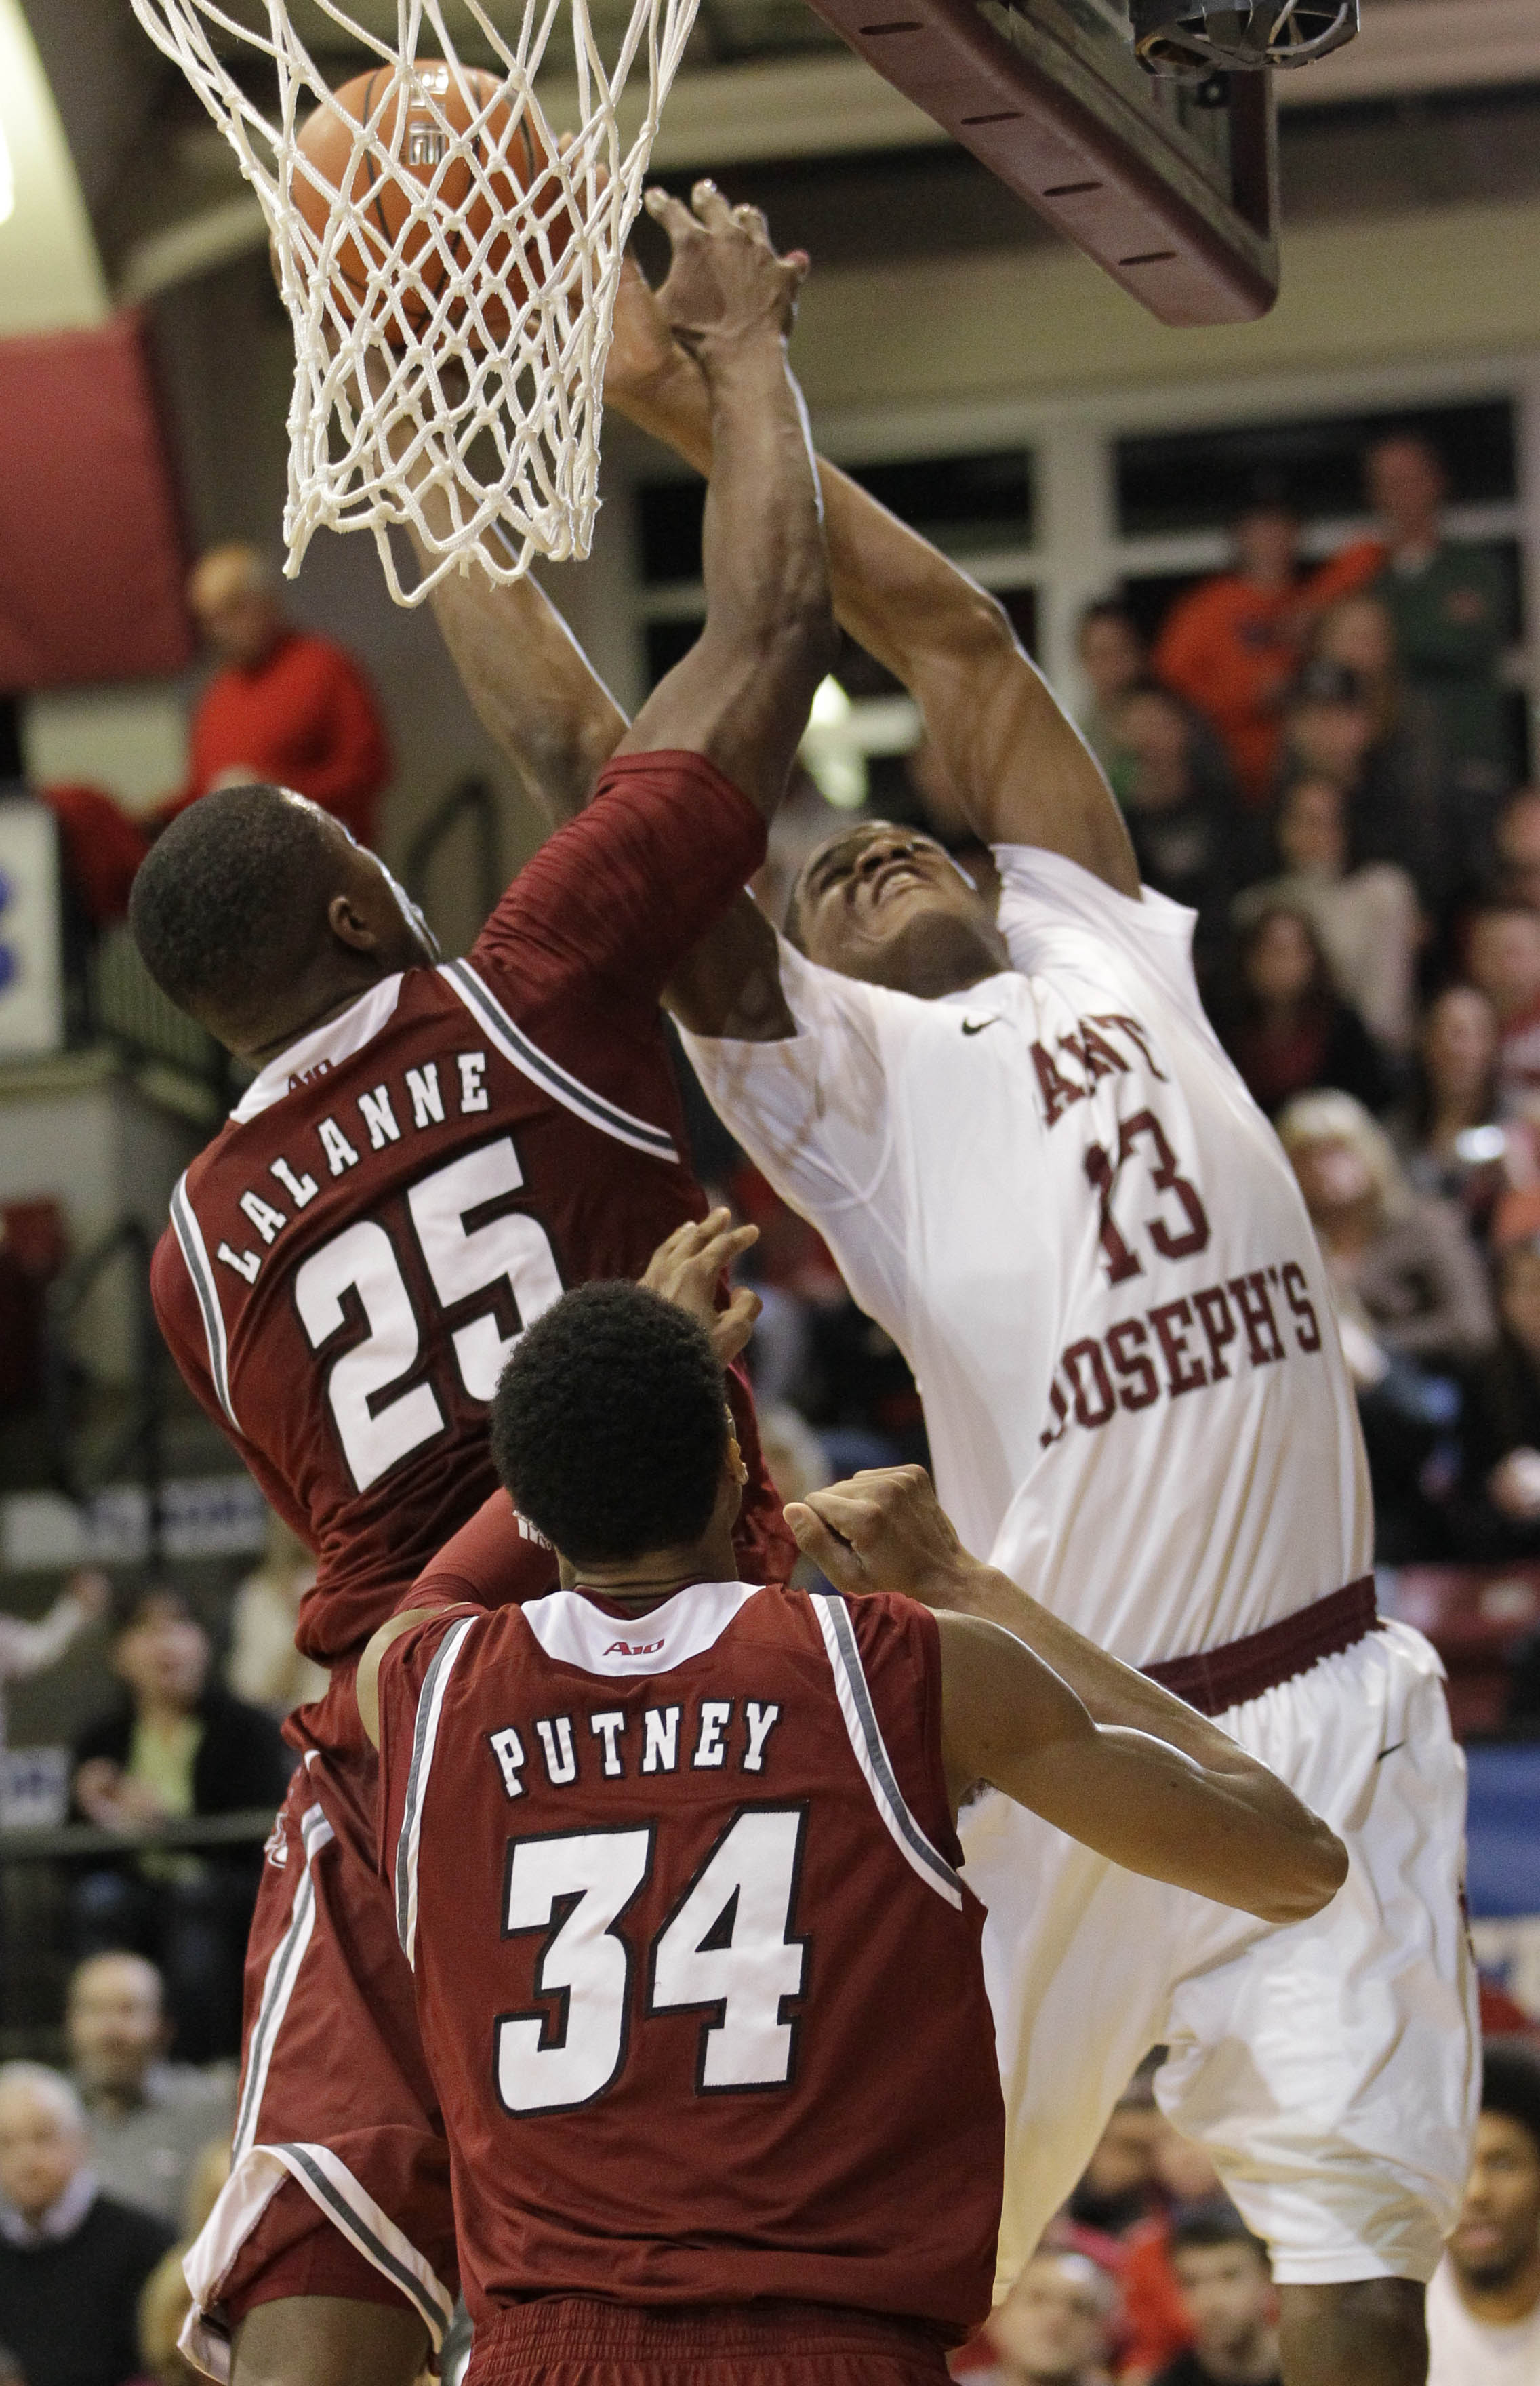 St. Josephs' Ronald Roberts Jr. (13) goes up for a basket past Massachusetts' Cady Lalanne (25) and Raphiael Putney (34) in the second half of an NCAA college basketball game, Saturday, Feb. 1, 2014, in Philadelphia.  St. Josephs won 73-68